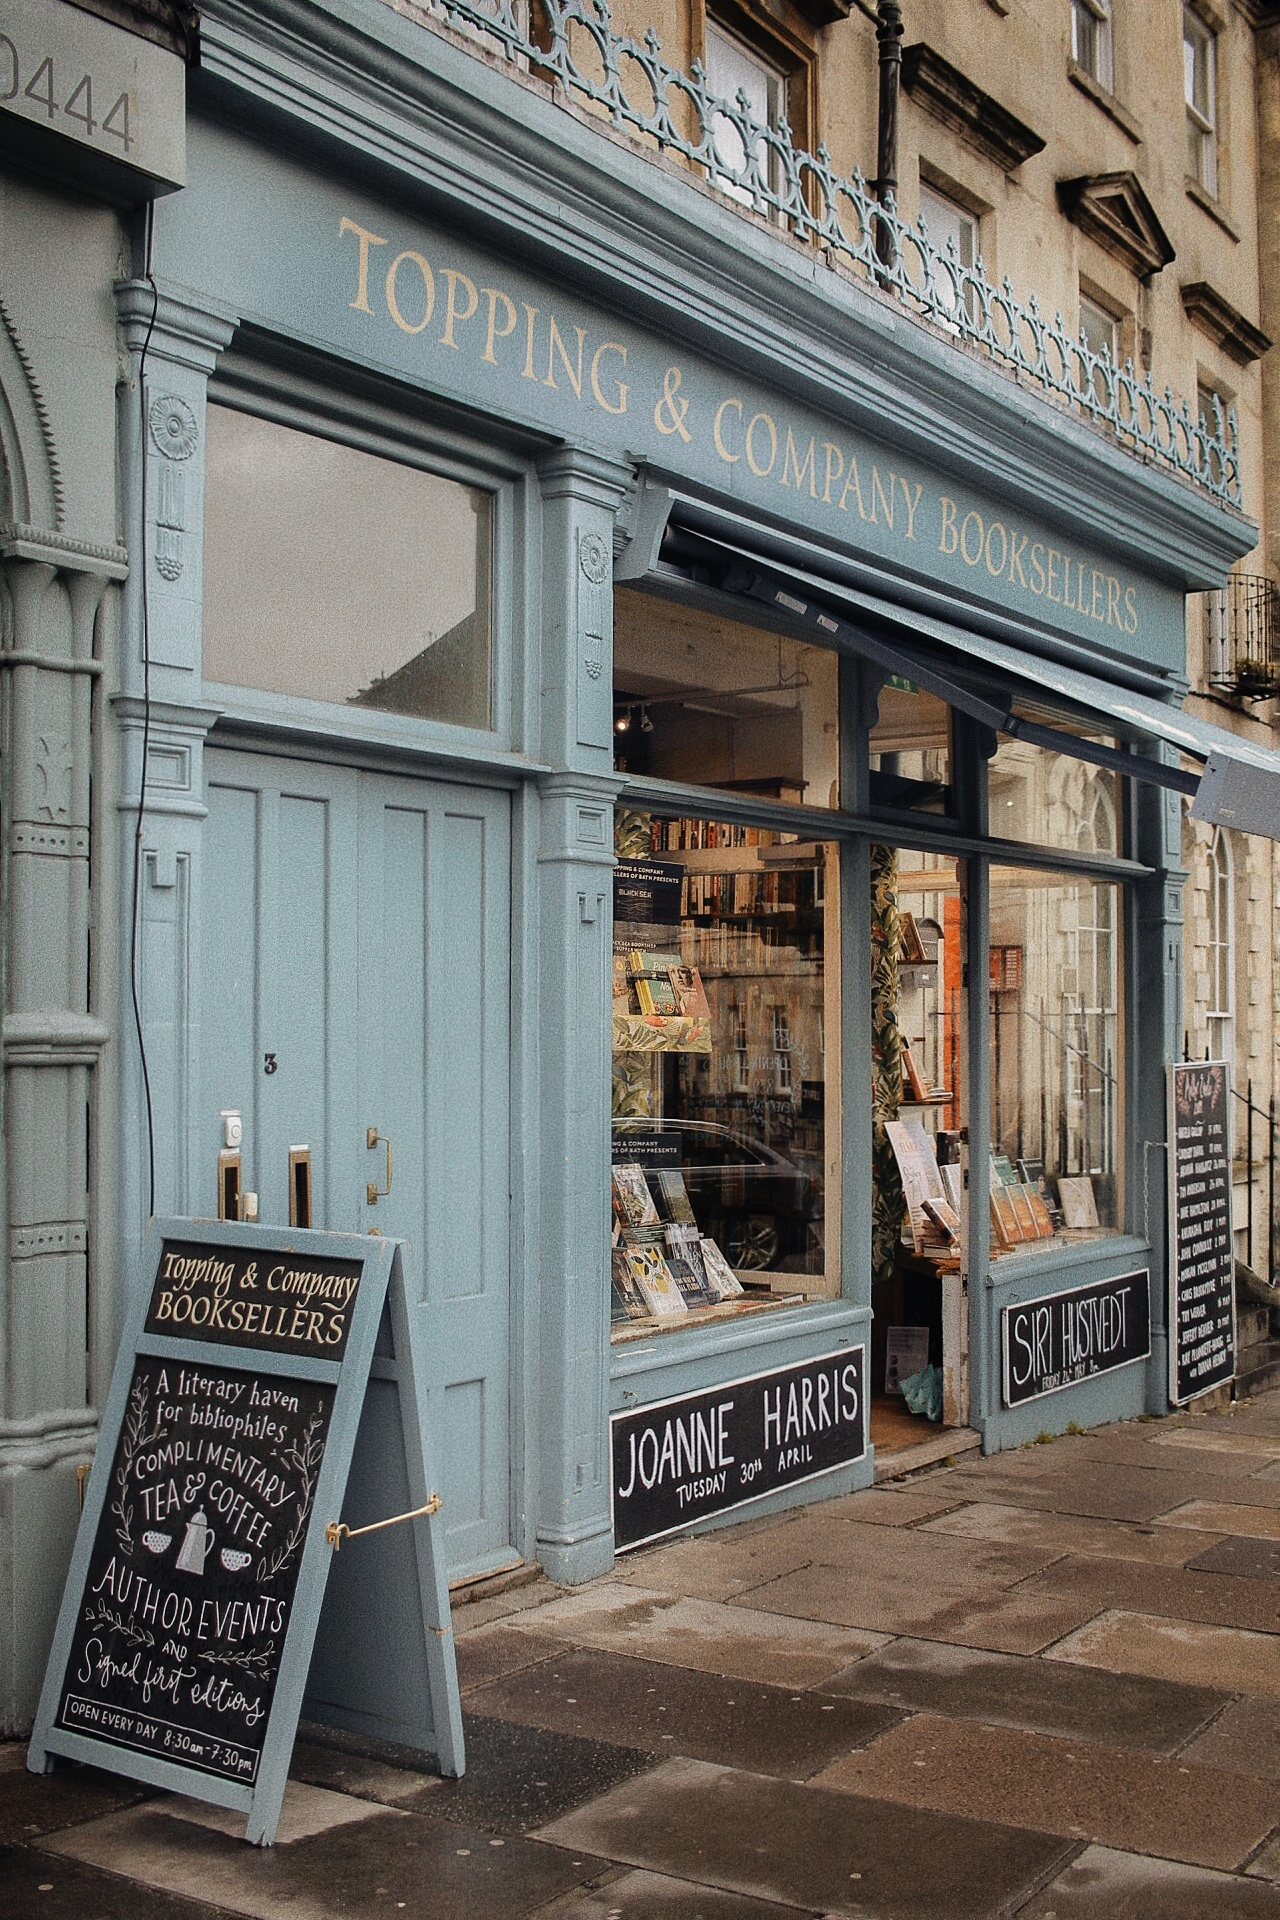 TOPPING & COMPANY BOOKSELLERS. - The Paragon, Bath BA1 5LS